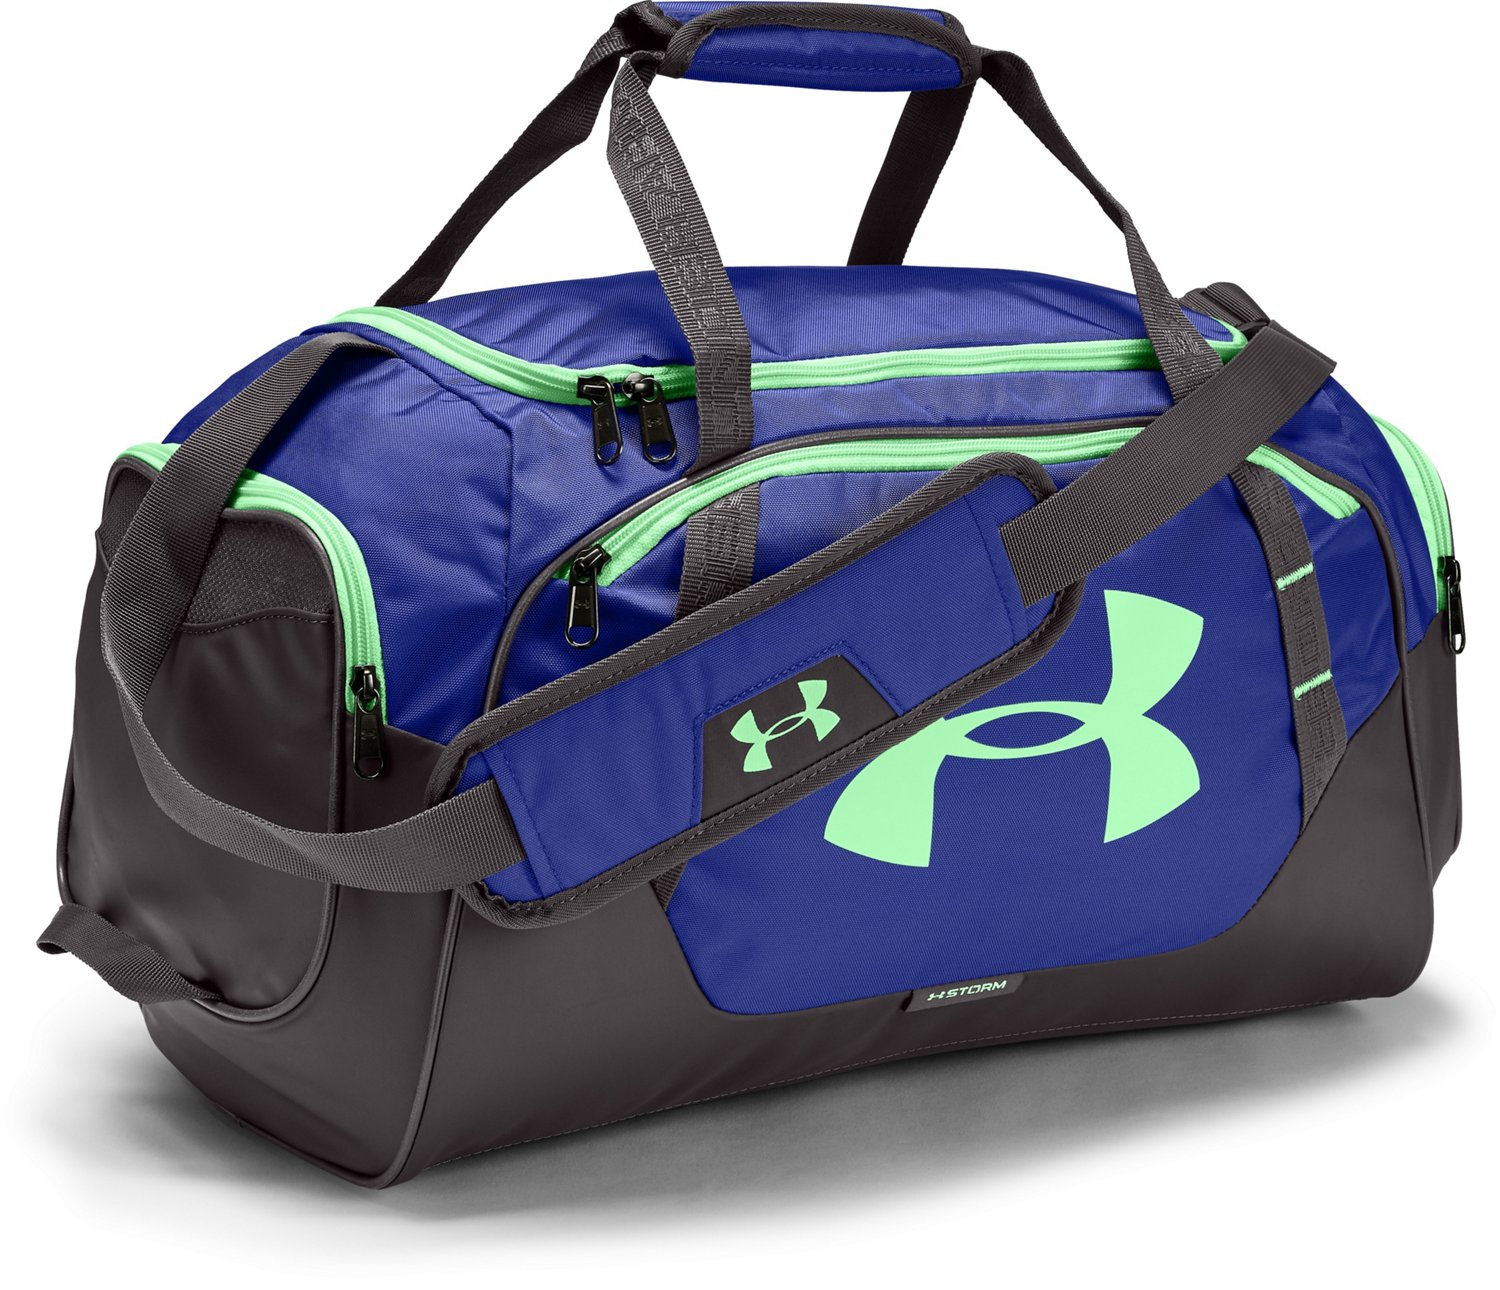 264a0805ca9d Display product reviews for Under Armour Undeniable II Small Duffel Bag